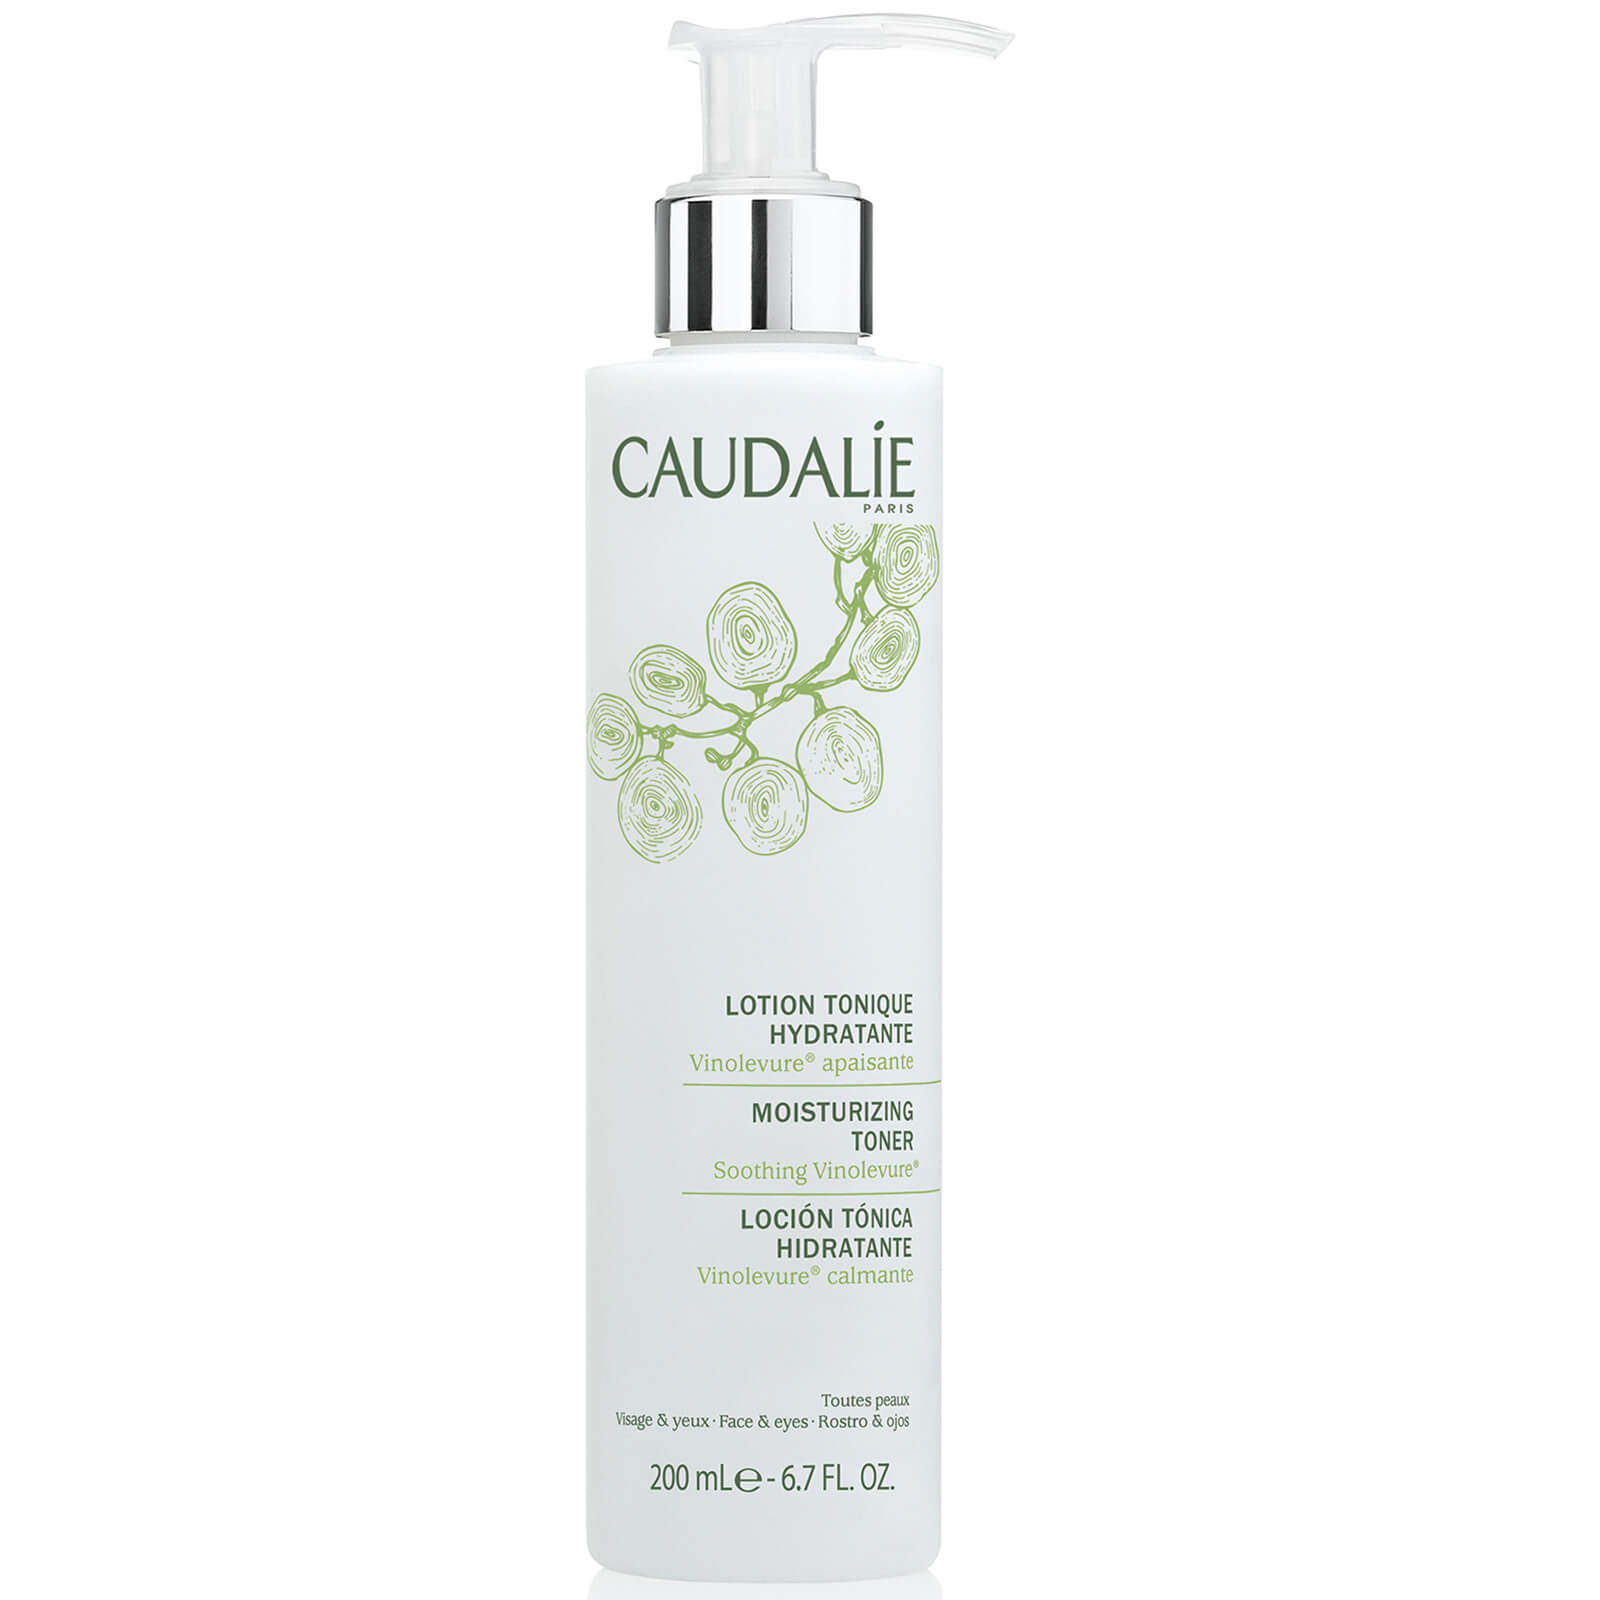 Caudalie Moisturizing Toner 200ml Free Delivery Hydrating 150ml Description